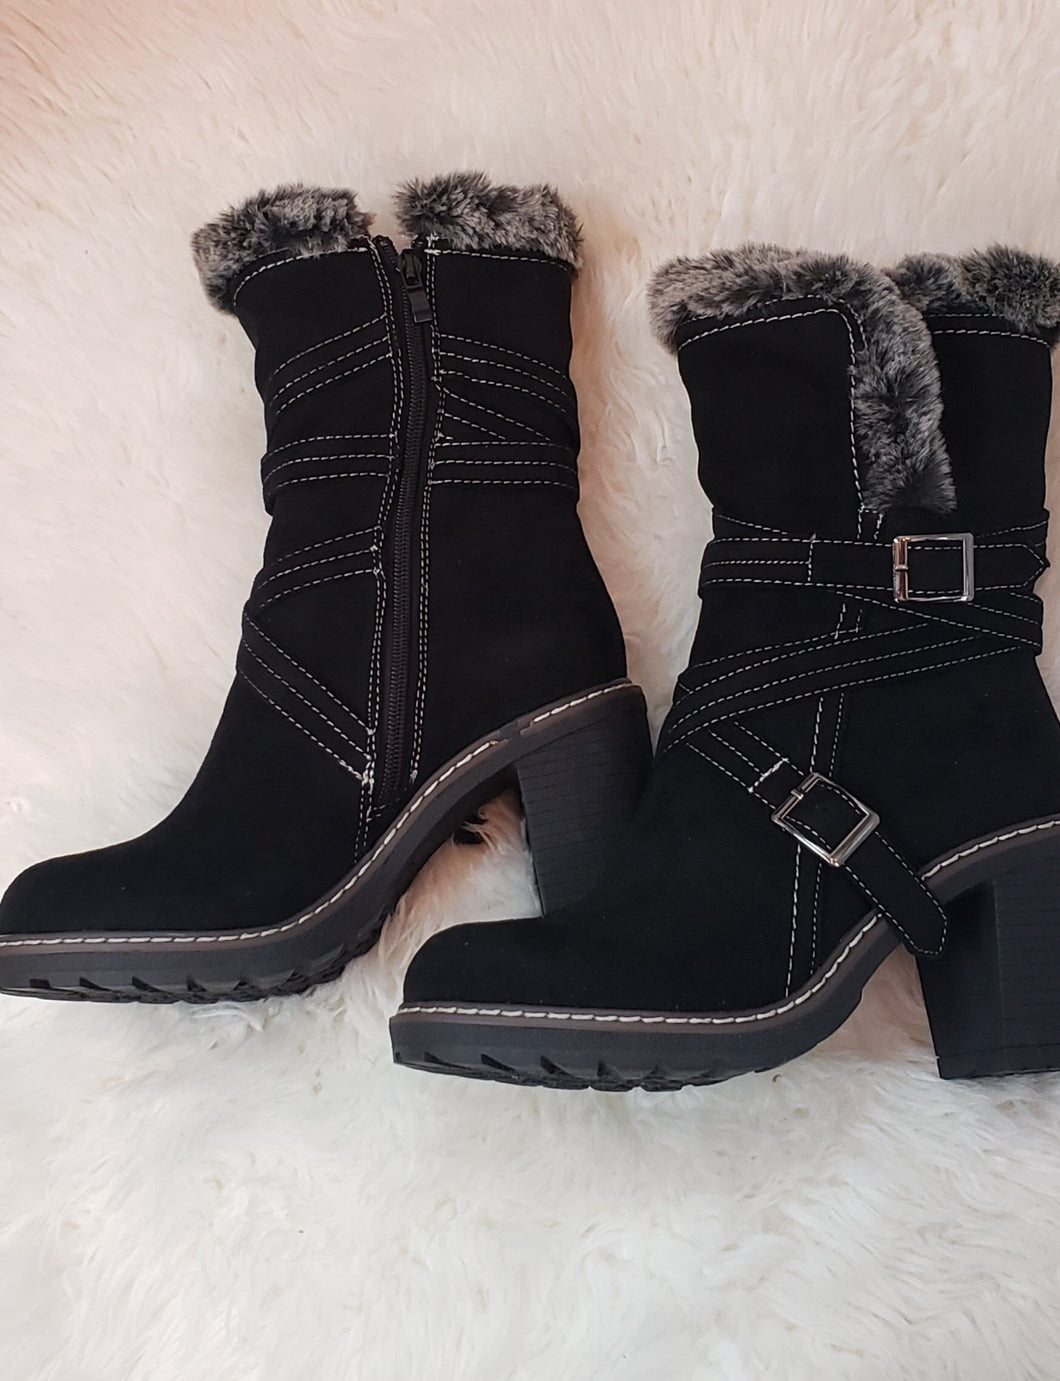 Black Heeled Cottage Boots With Fleece Lining